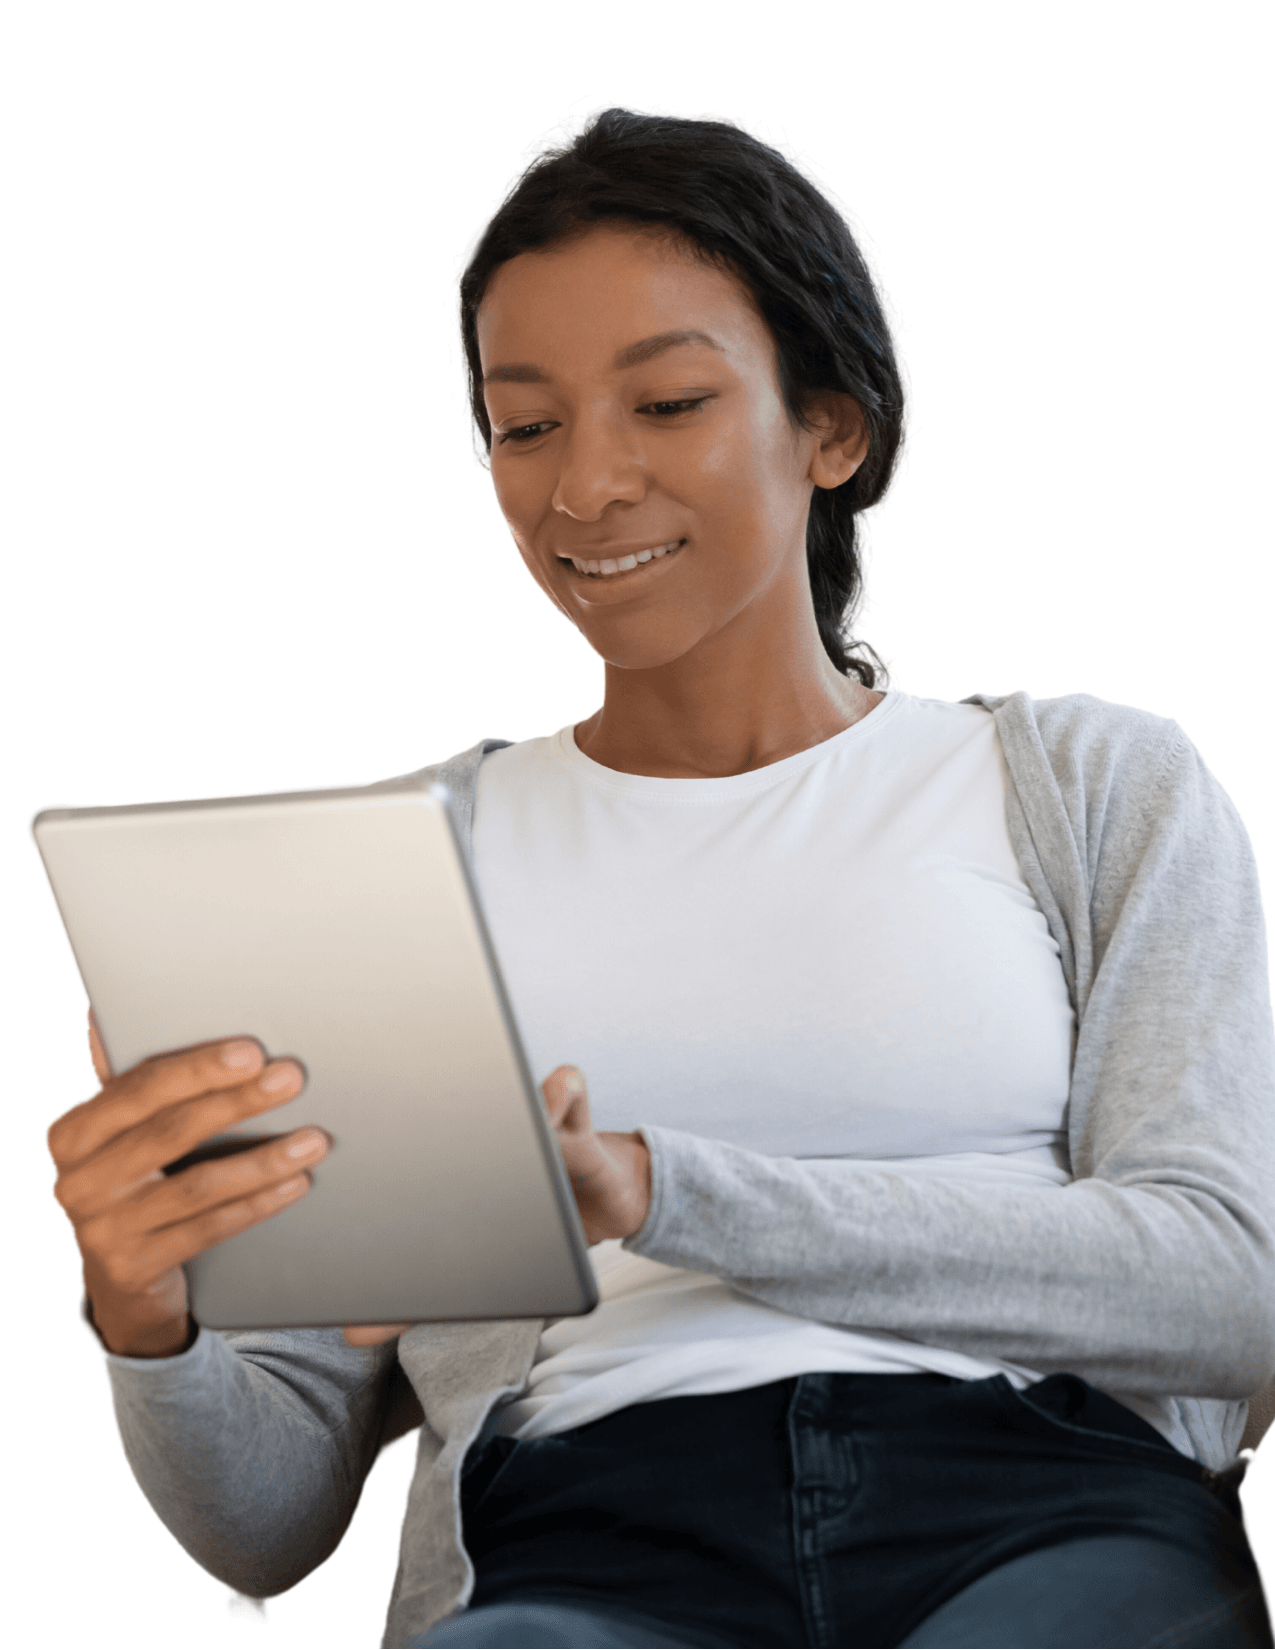 image of a person reading an e-book